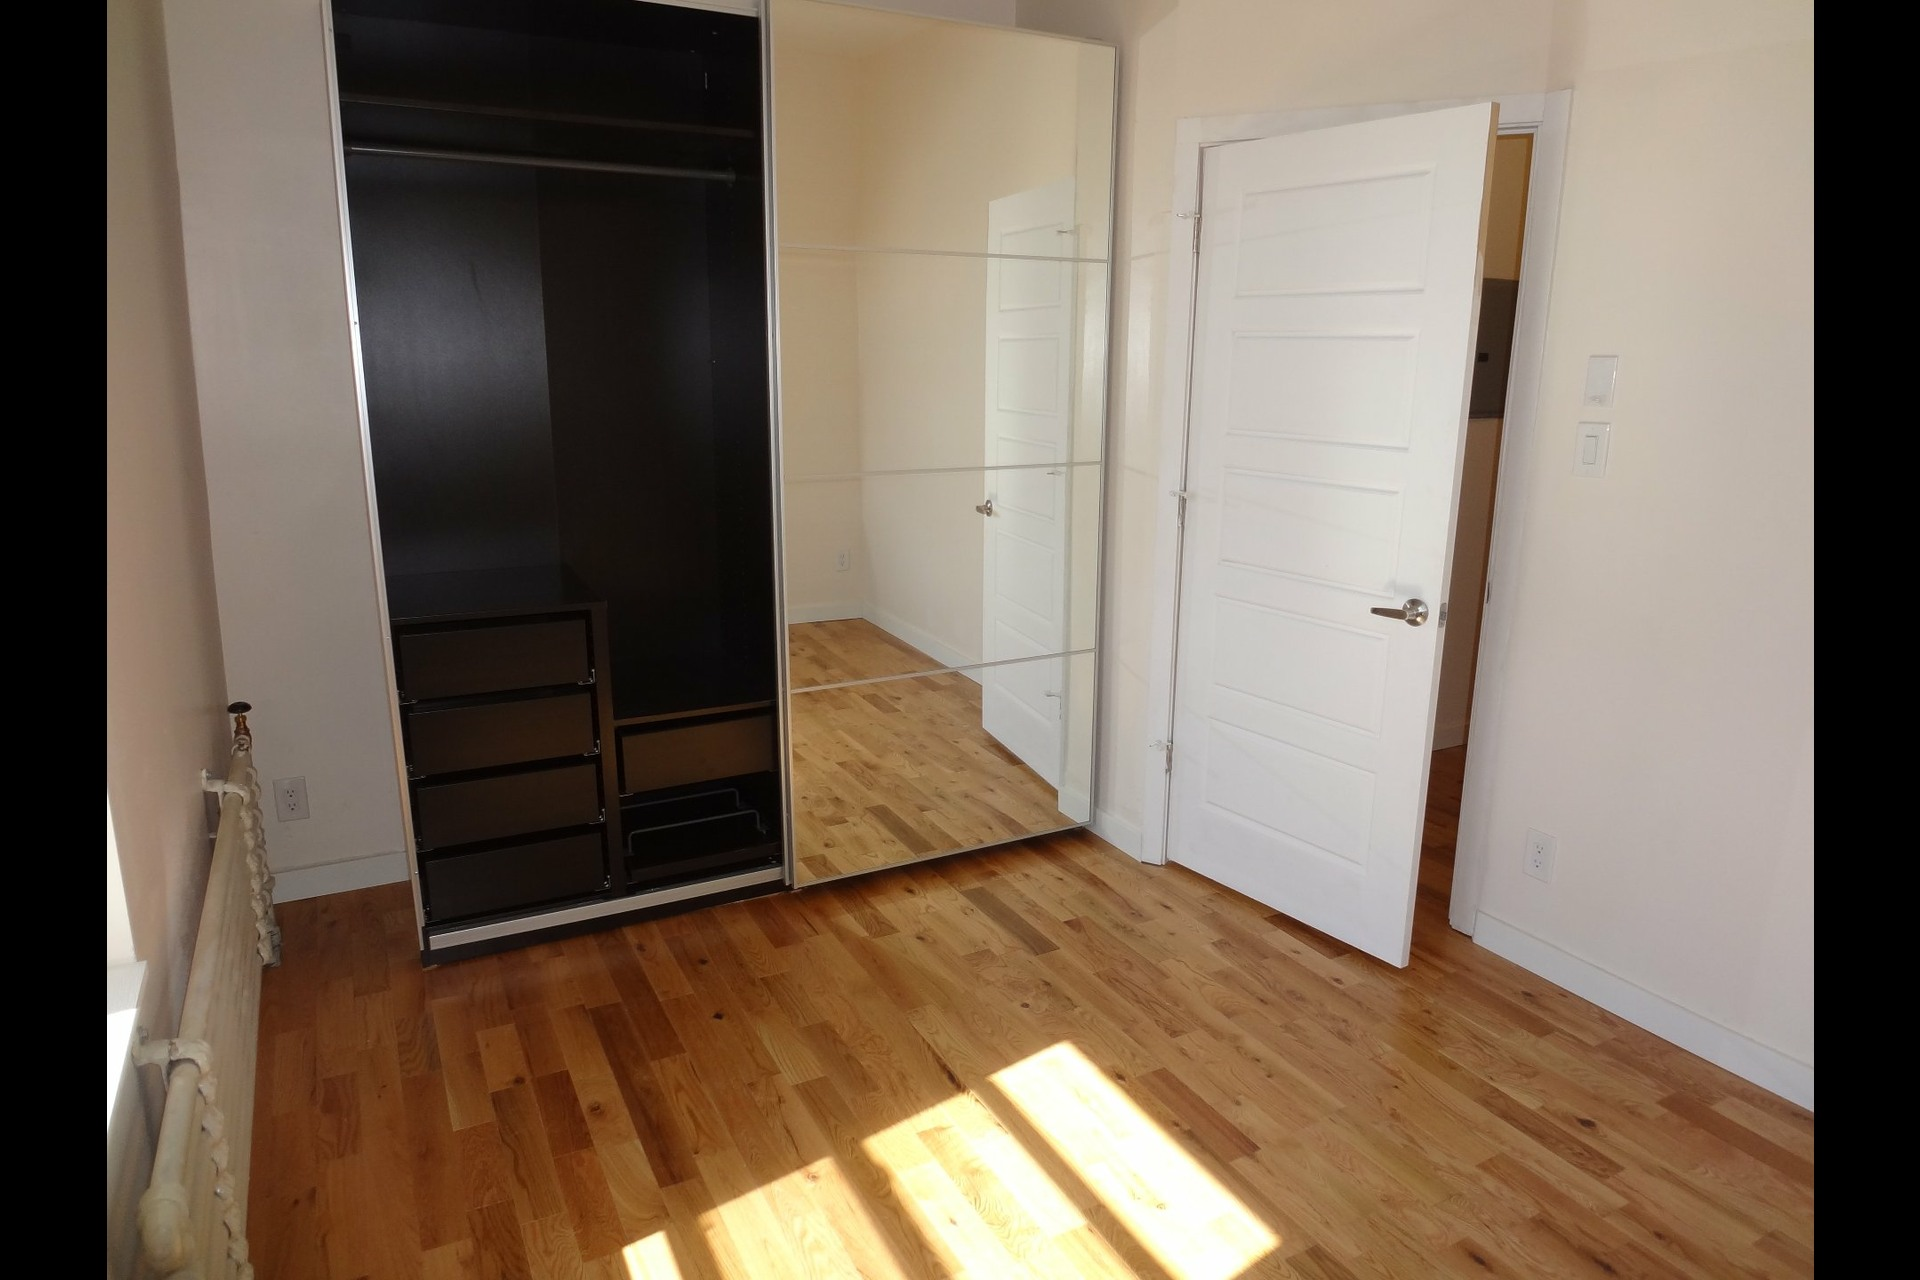 image 5 - Apartment For rent Westmount - 4 rooms